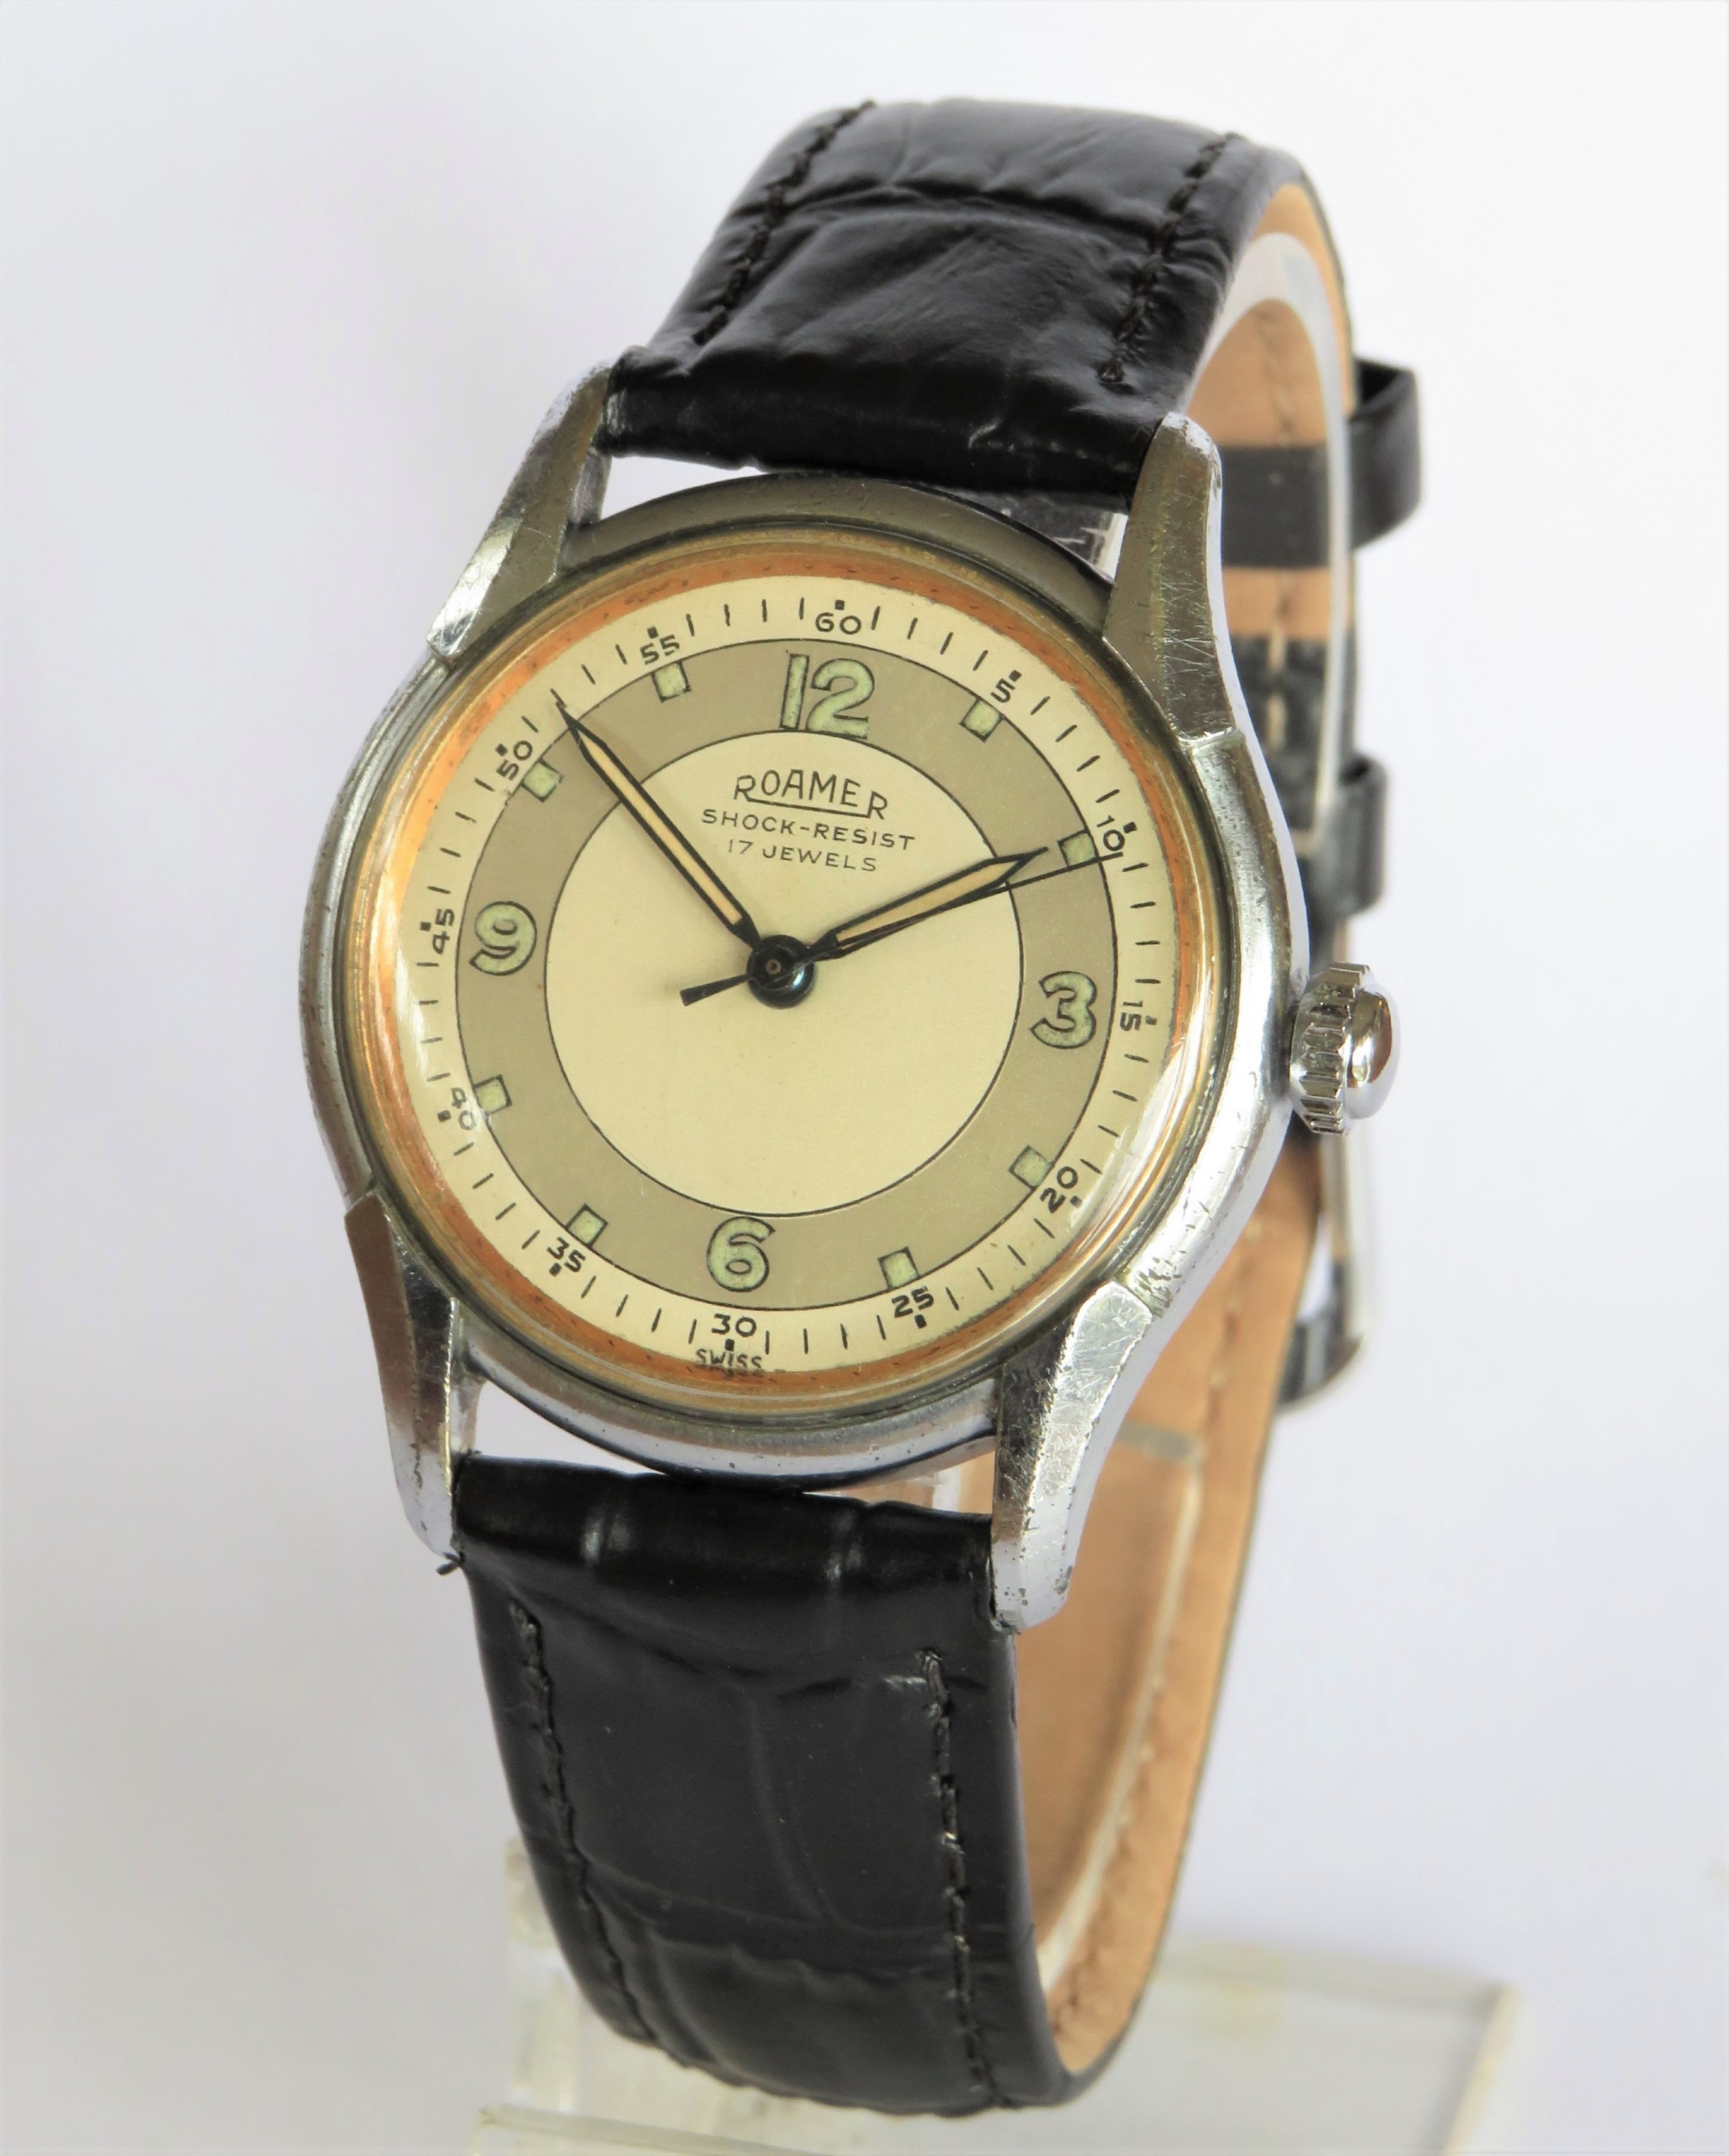 gents 1950s roamer wrist watch